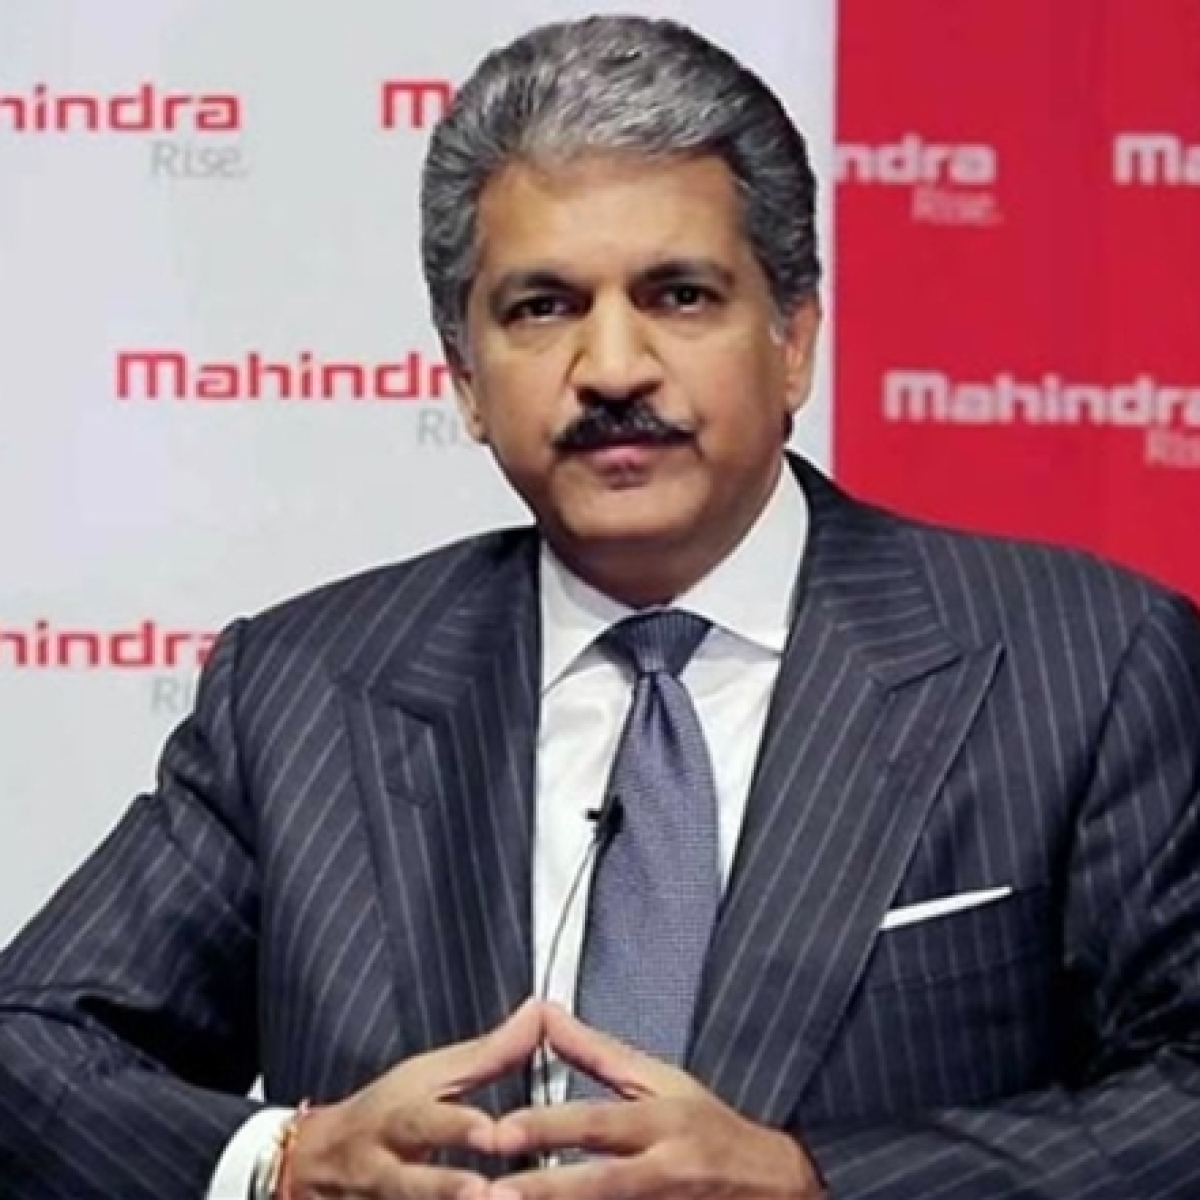 'Thank your dad for being a valuable and wonderful colleague': Anand Mahindra tweets his wishes to retiring employee